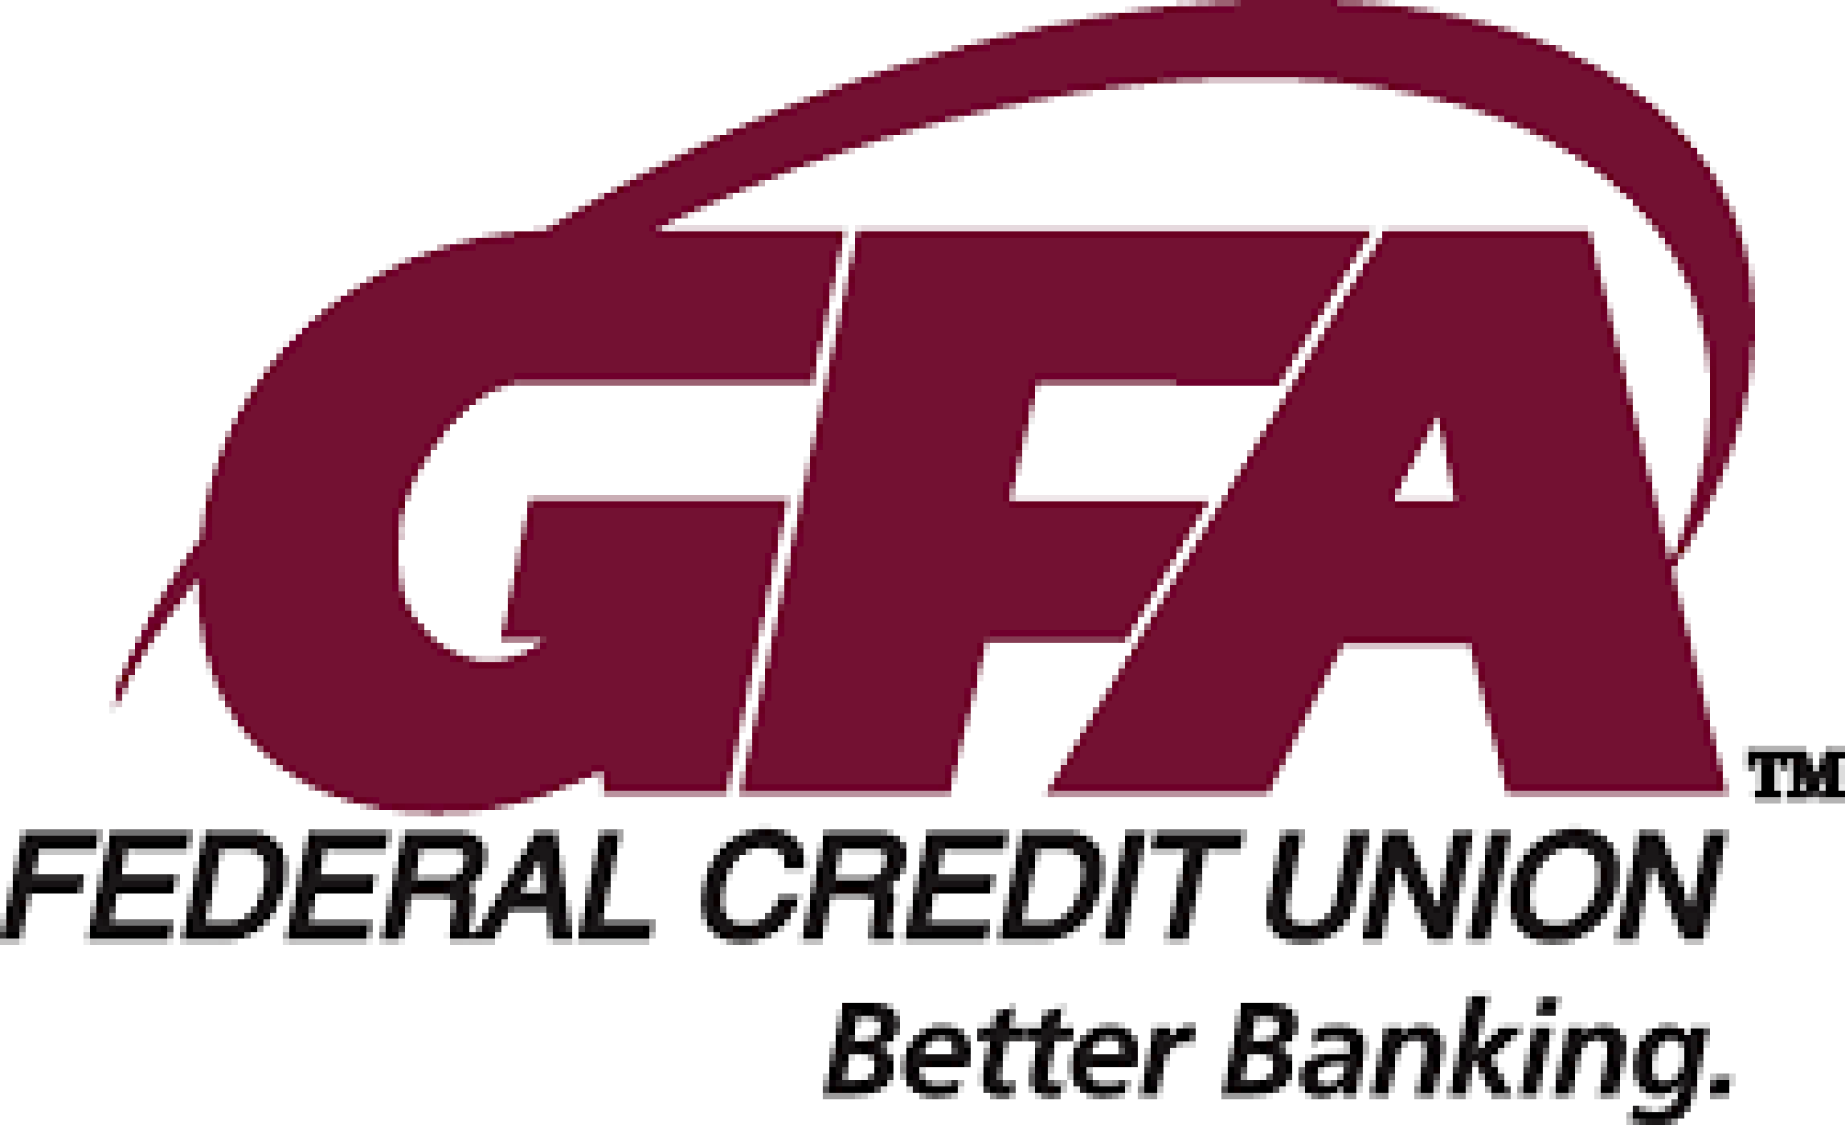 Gfa credit union logo